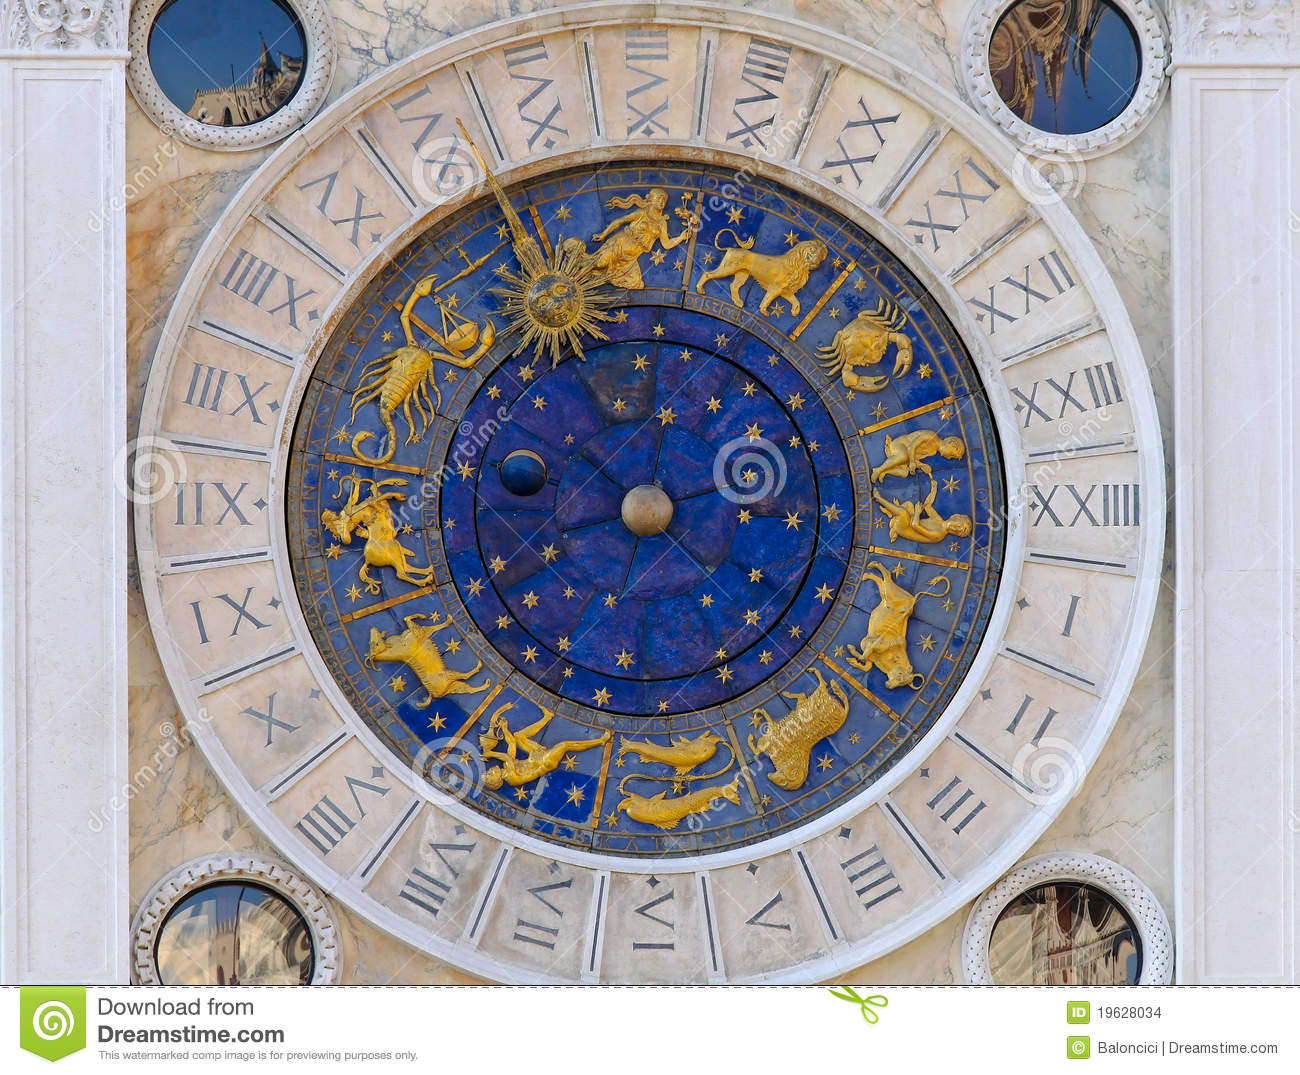 astrology-clock-san-marco-19628034.jpg